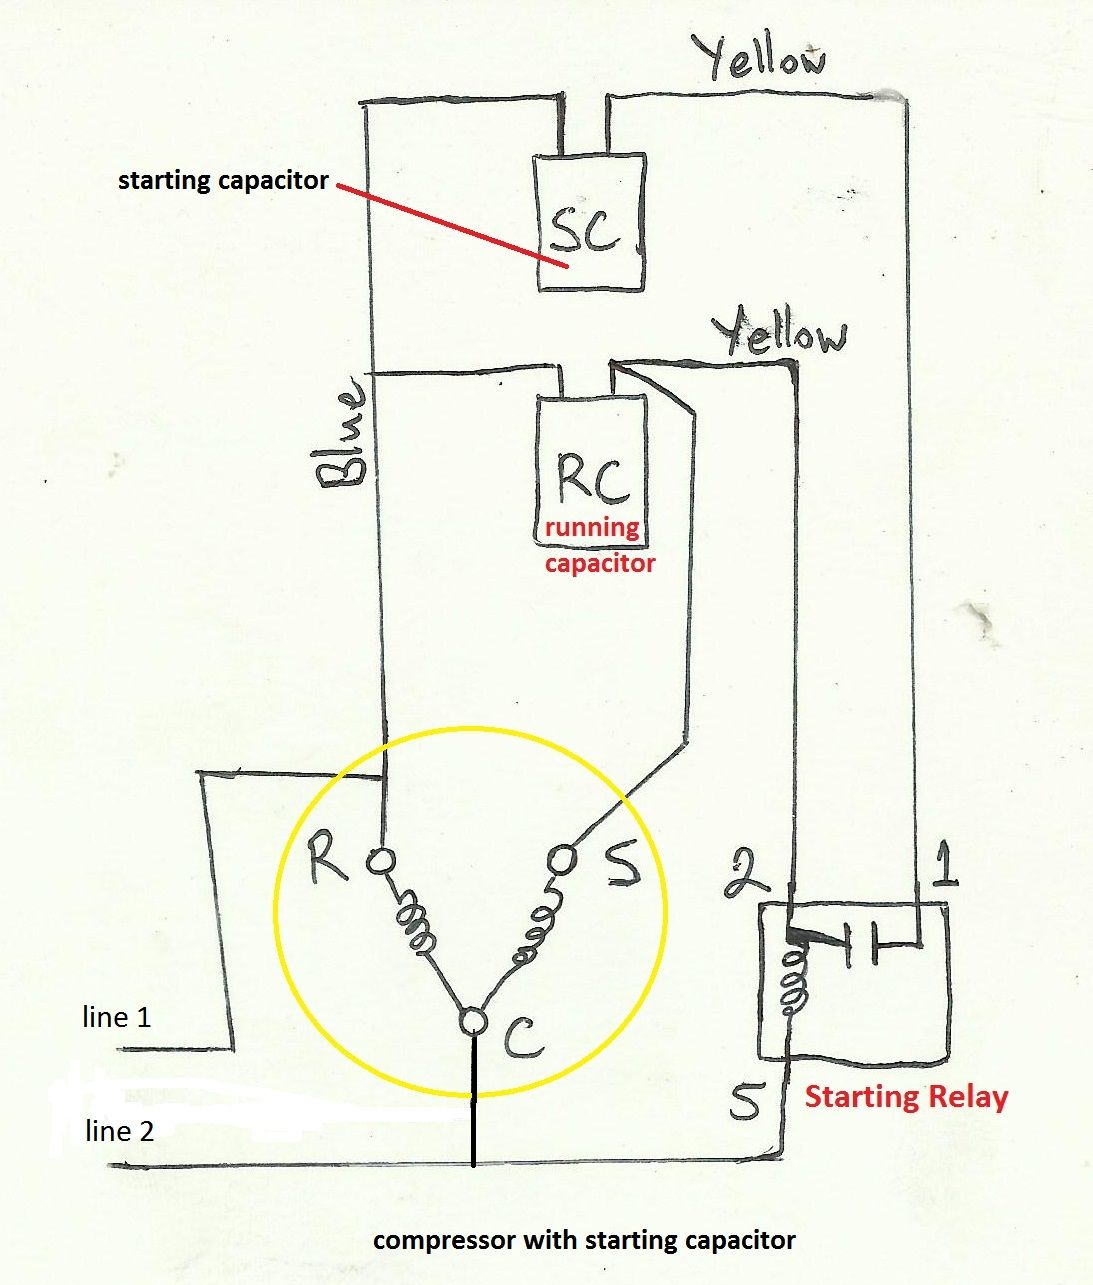 air compressor capacitor wiring diagram before you call a ac repair air compressor capacitor wiring diagram before you call a ac repair man my blog for some tips on how to save thousands in ac repairs